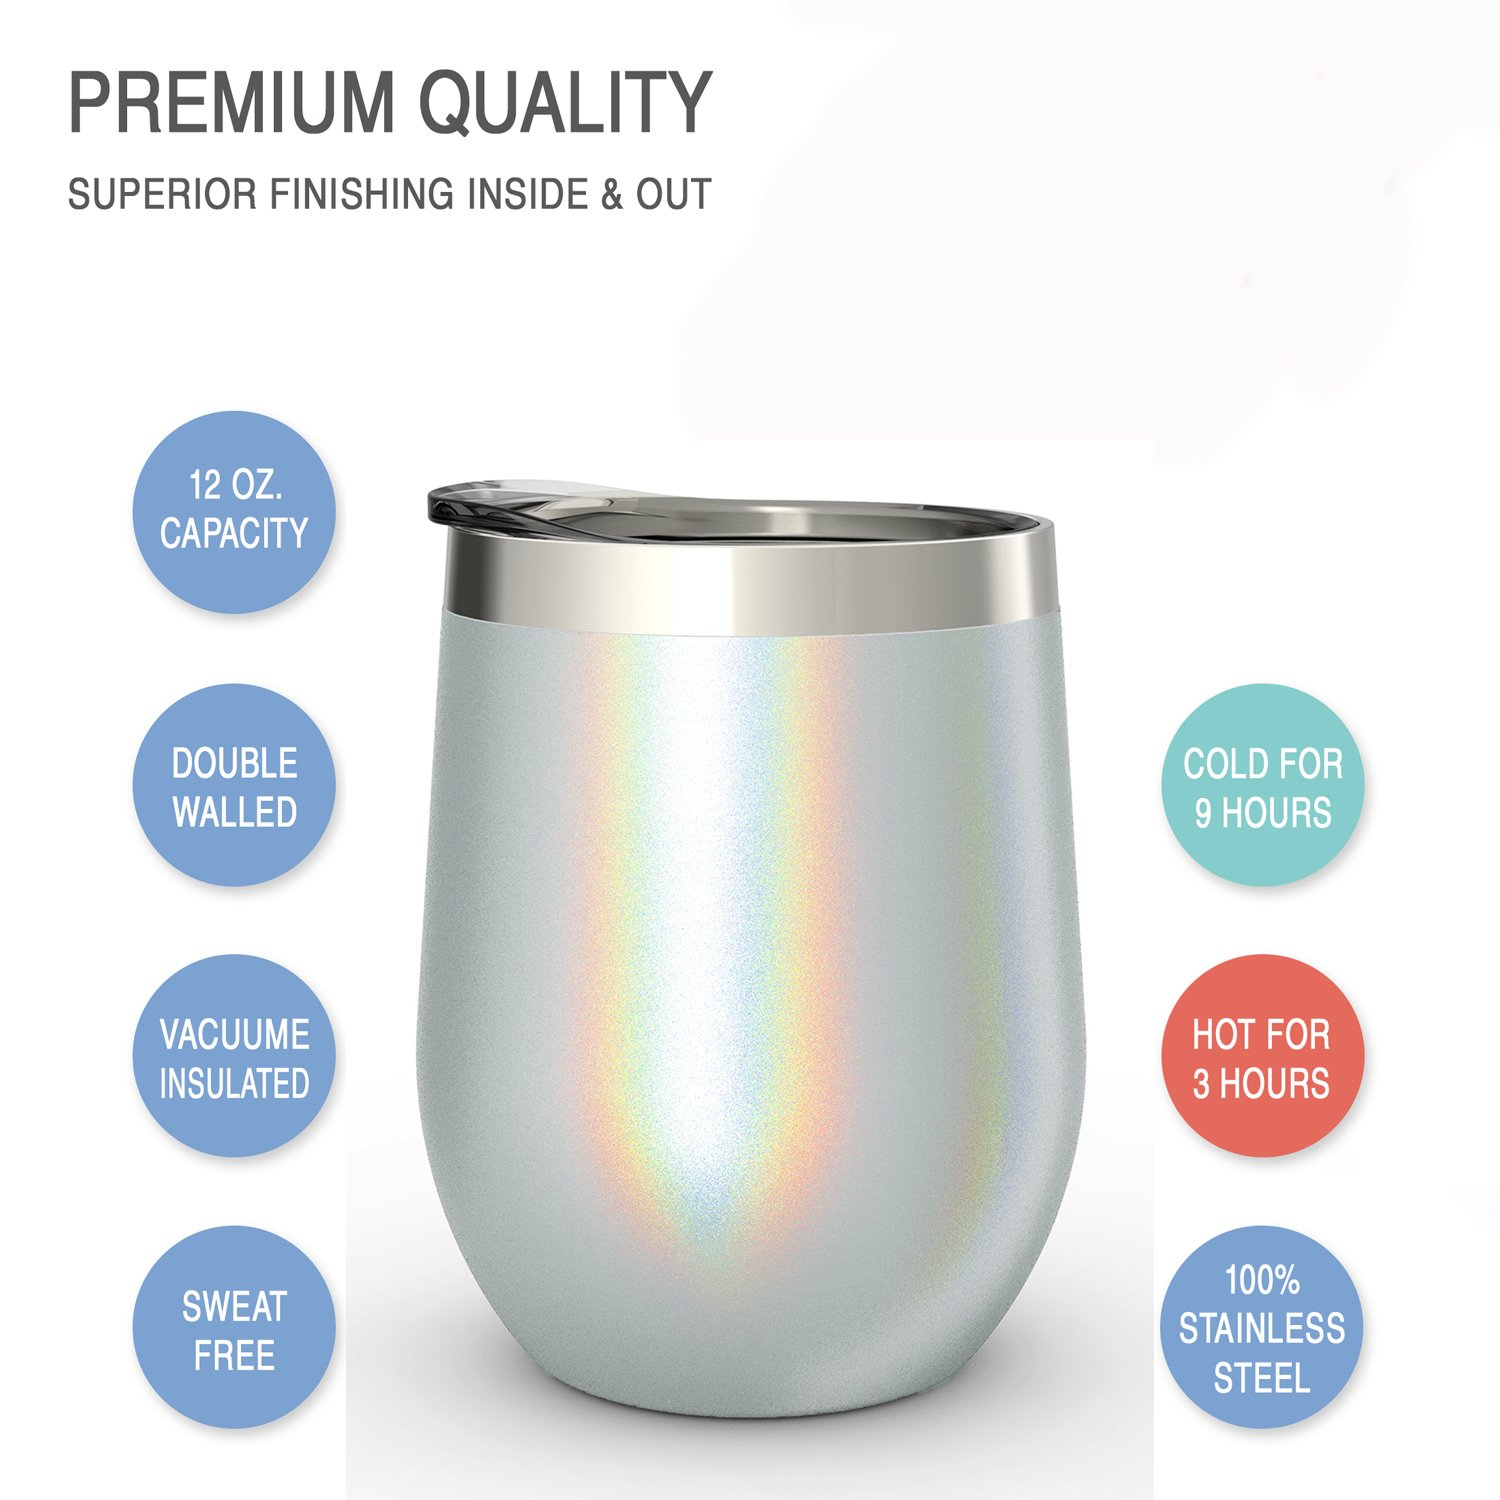 CHILLOUT LIFE Stainless Steel Stemless Wine Glass Tumbler with Lid, 12 oz | Double Wall Vacuum Insulated Travel Tumbler Cup for Coffee, Wine, Cocktails, Ice Cream - Sparkle Holographic Wine Tumbler by CHILLOUT LIFE (Image #3)